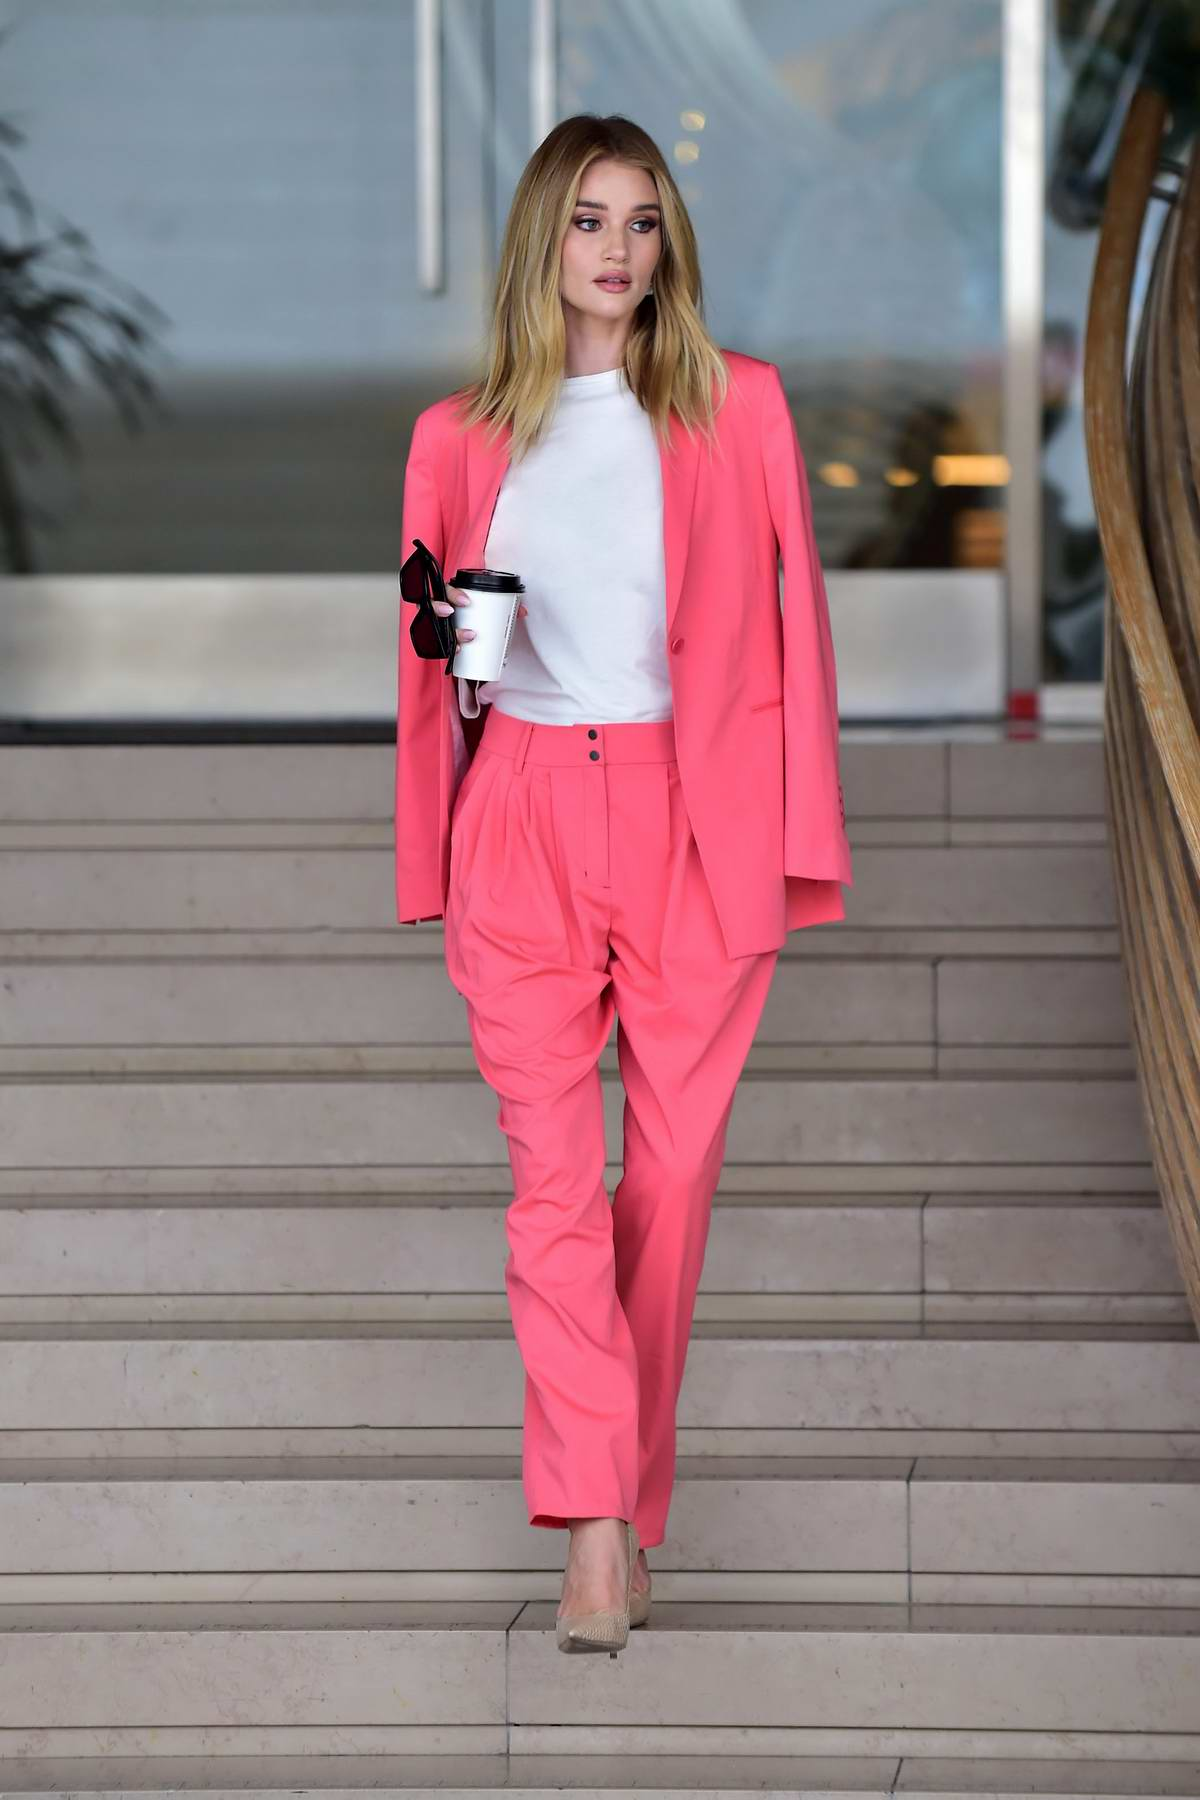 Rosie Huntington-Whiteley looks stunning in a pink pantsuit as she leaves an office building in Beverly Hills, Los Angeles